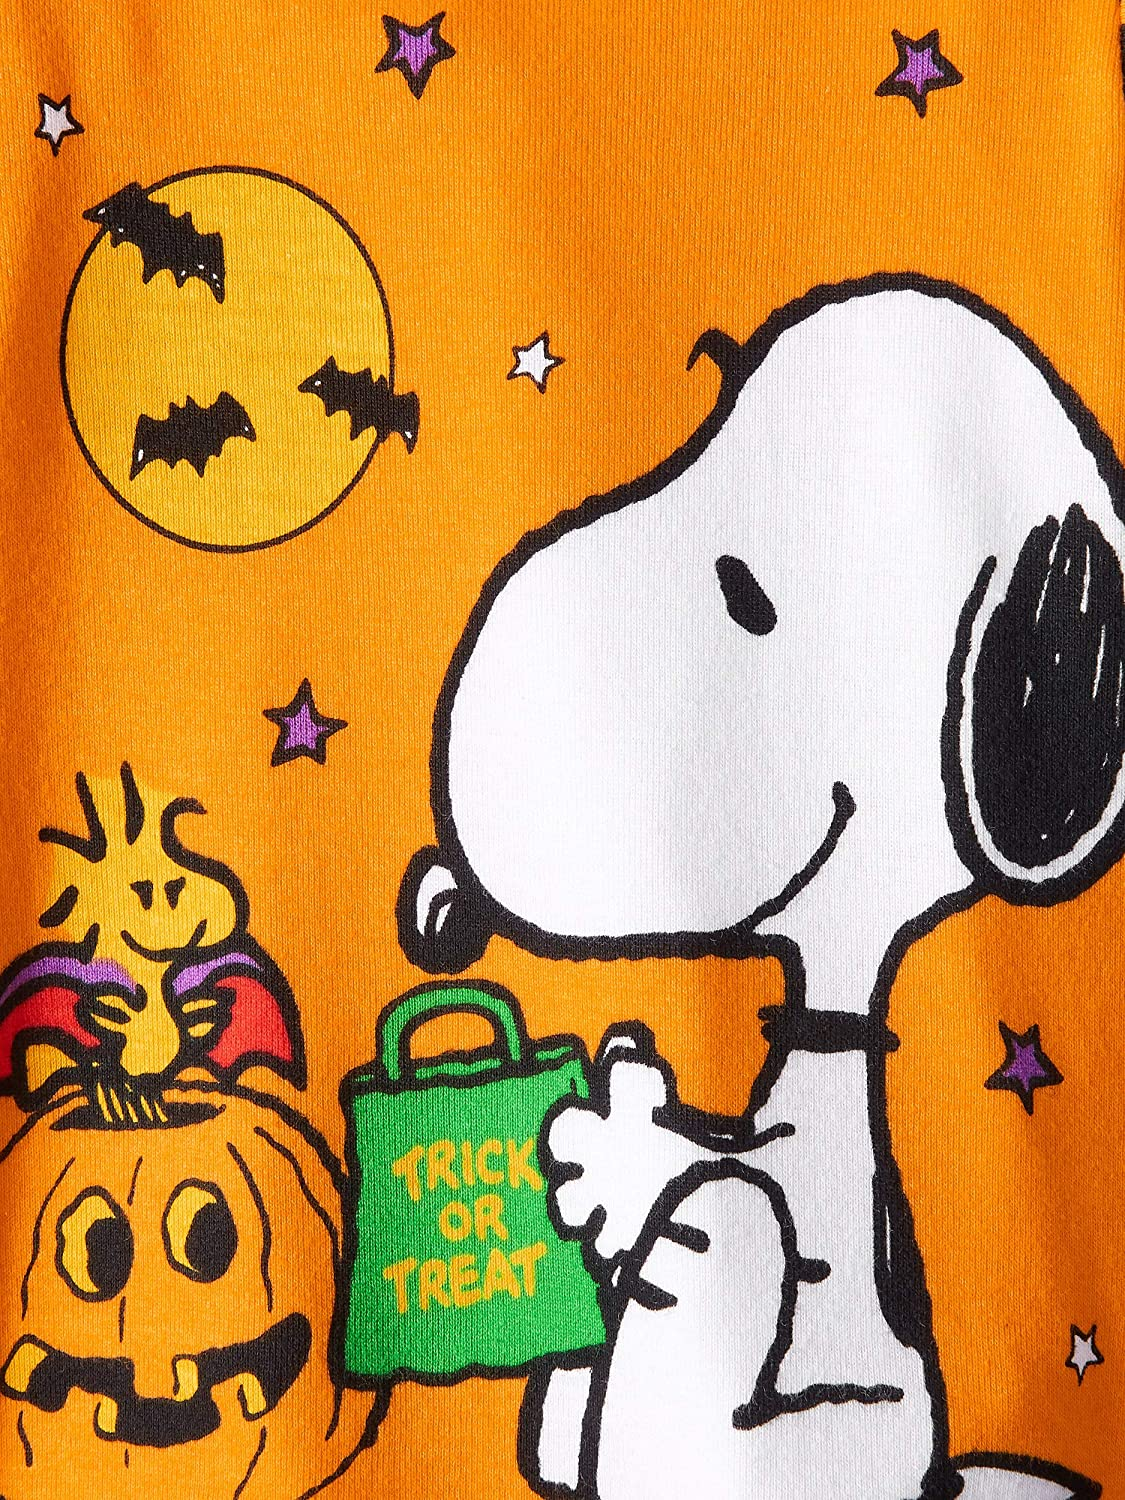 12 Months Peanuts Snoopy and Woodstock Trick or Treat Halloween 2 Piece Baby Boys Pajama Set